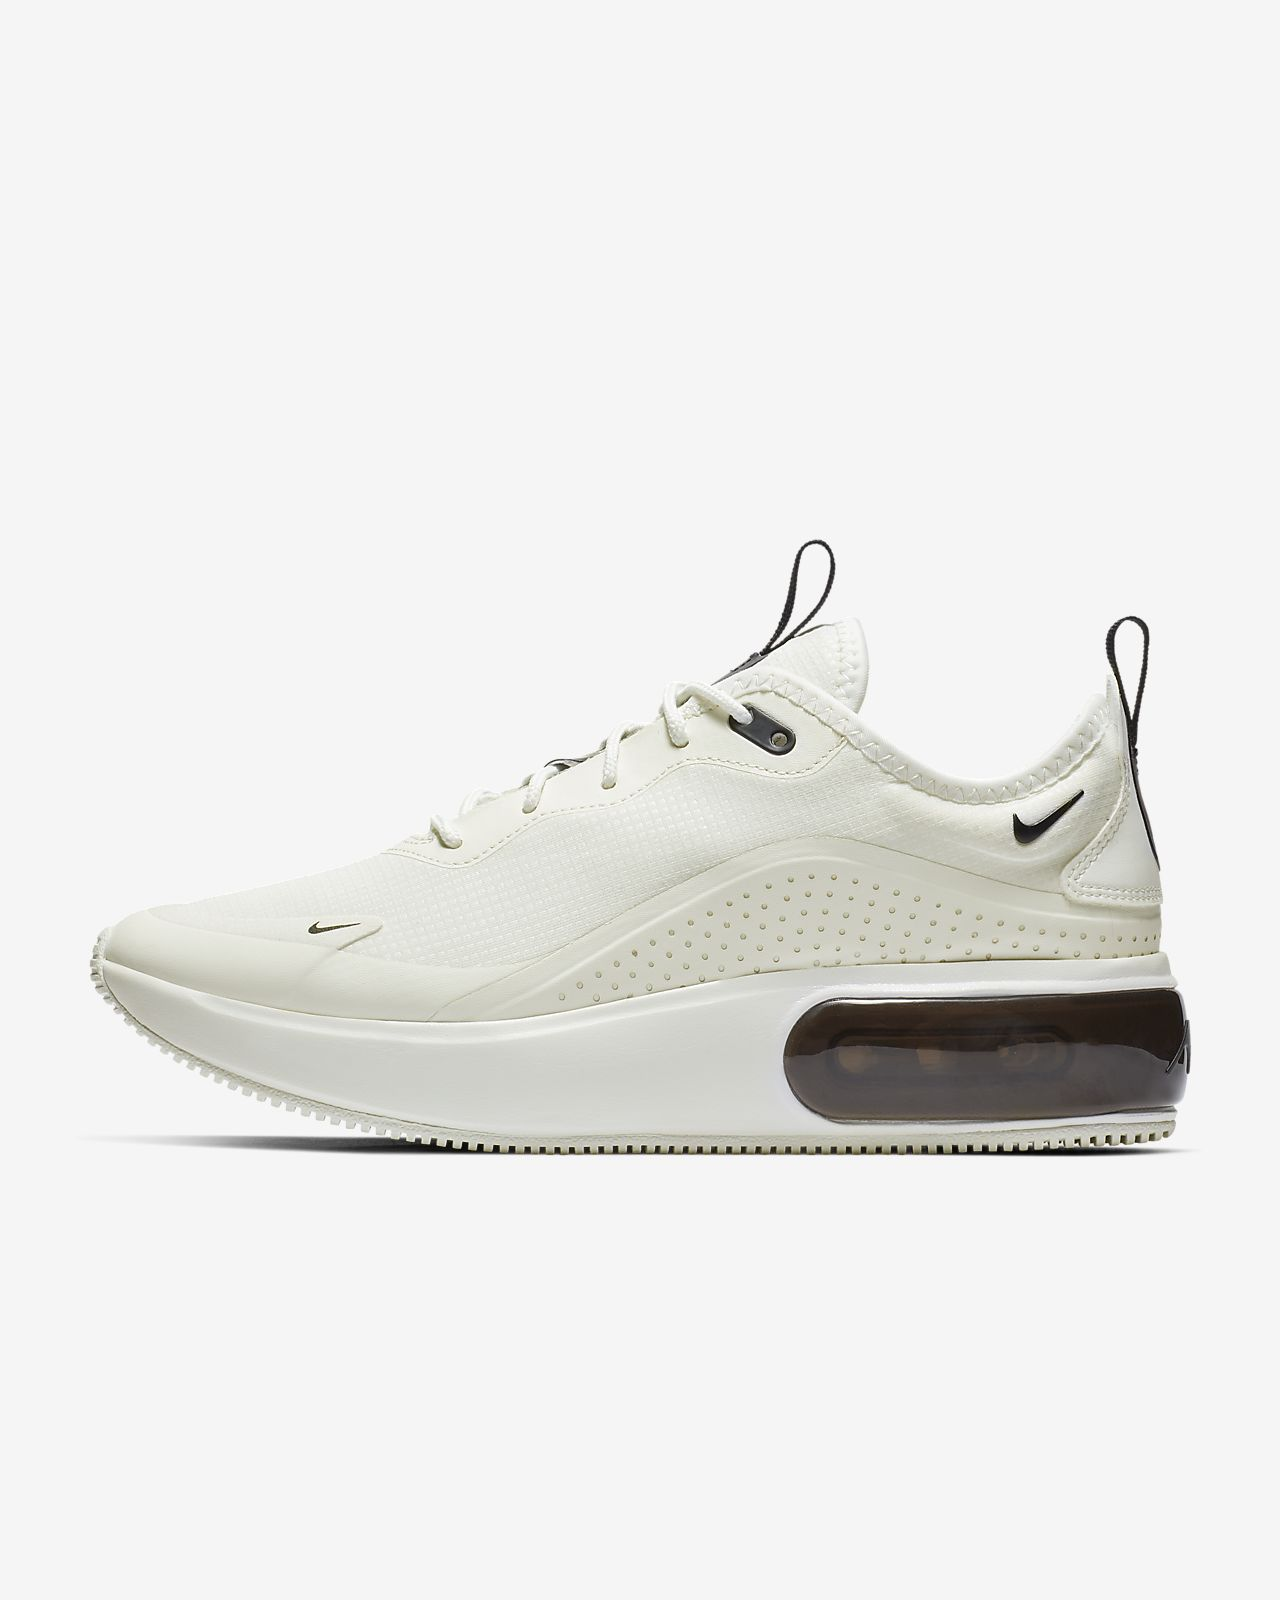 Nike Drippy | Nike air max, Nike air max for women, Nike air